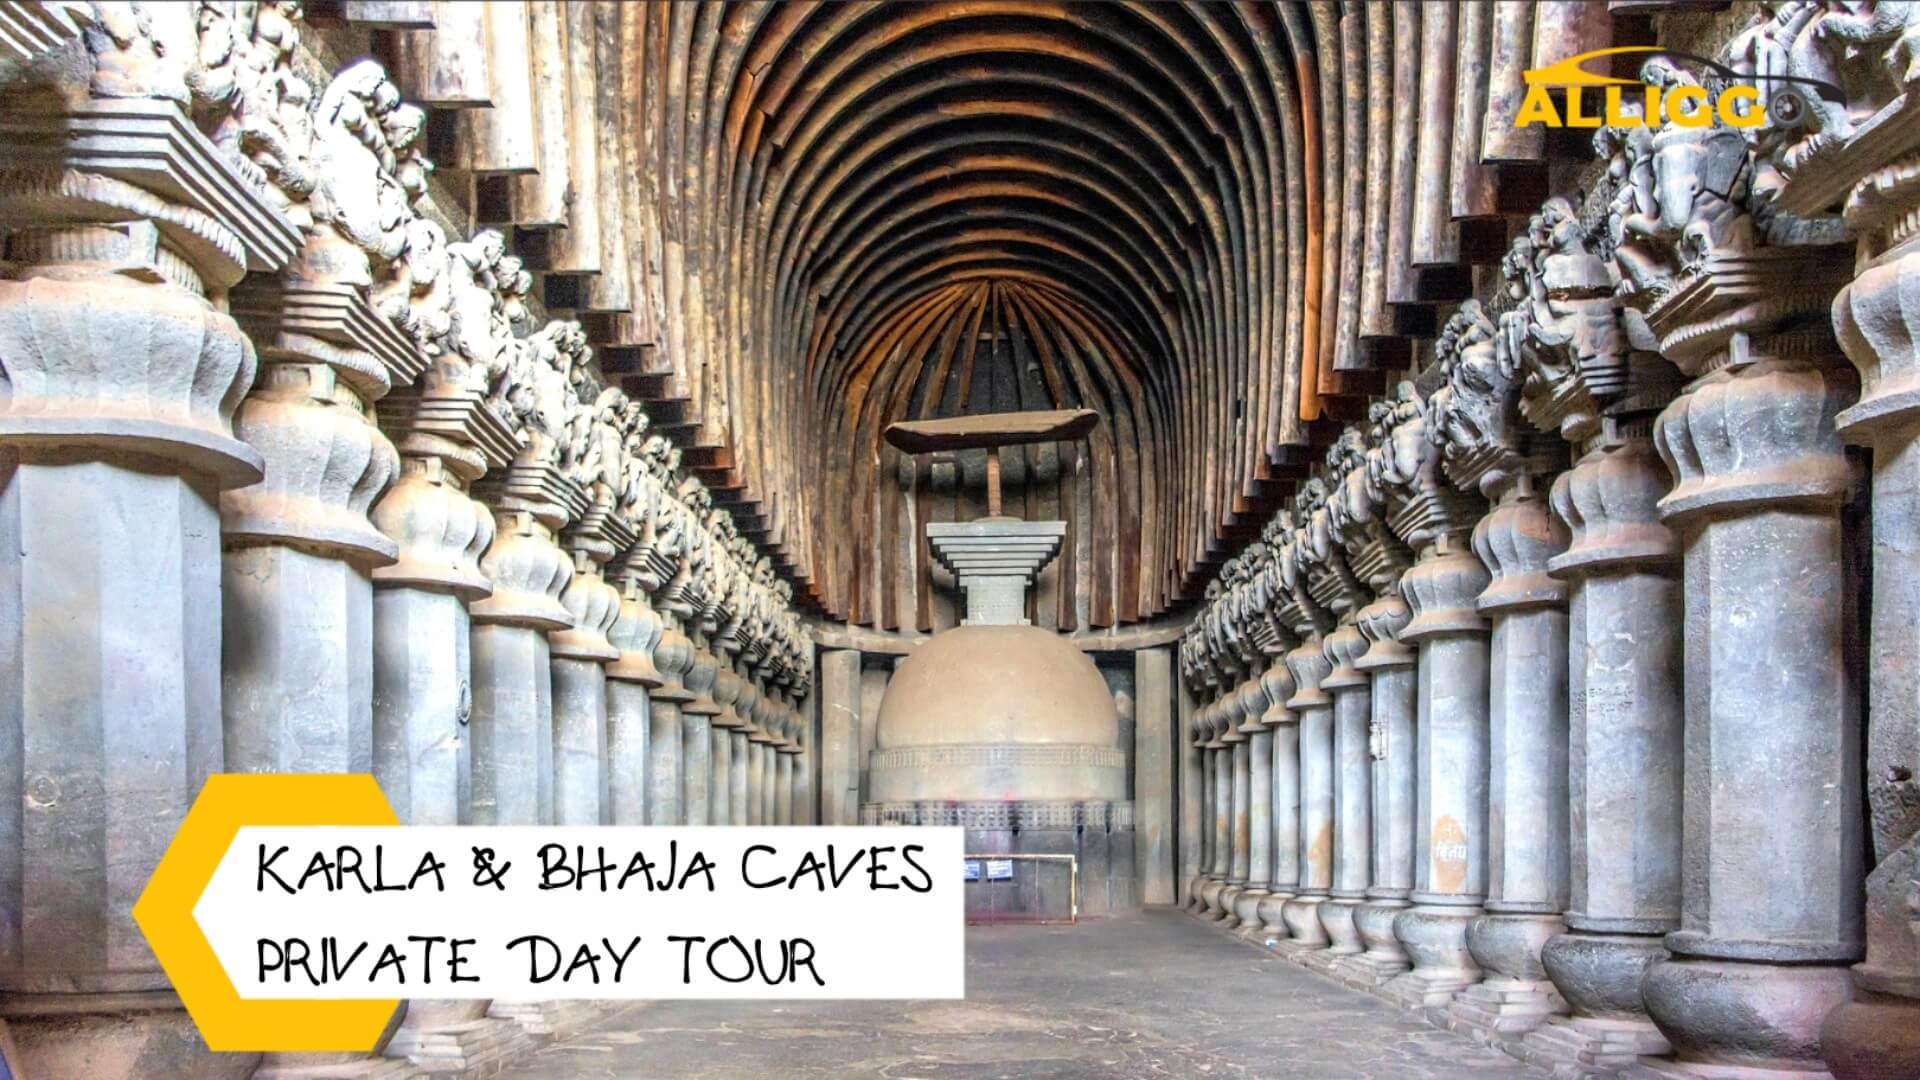 Alliggo_Car_Rentals_Karla_Bhaja_Caves_Private_Day_Tour